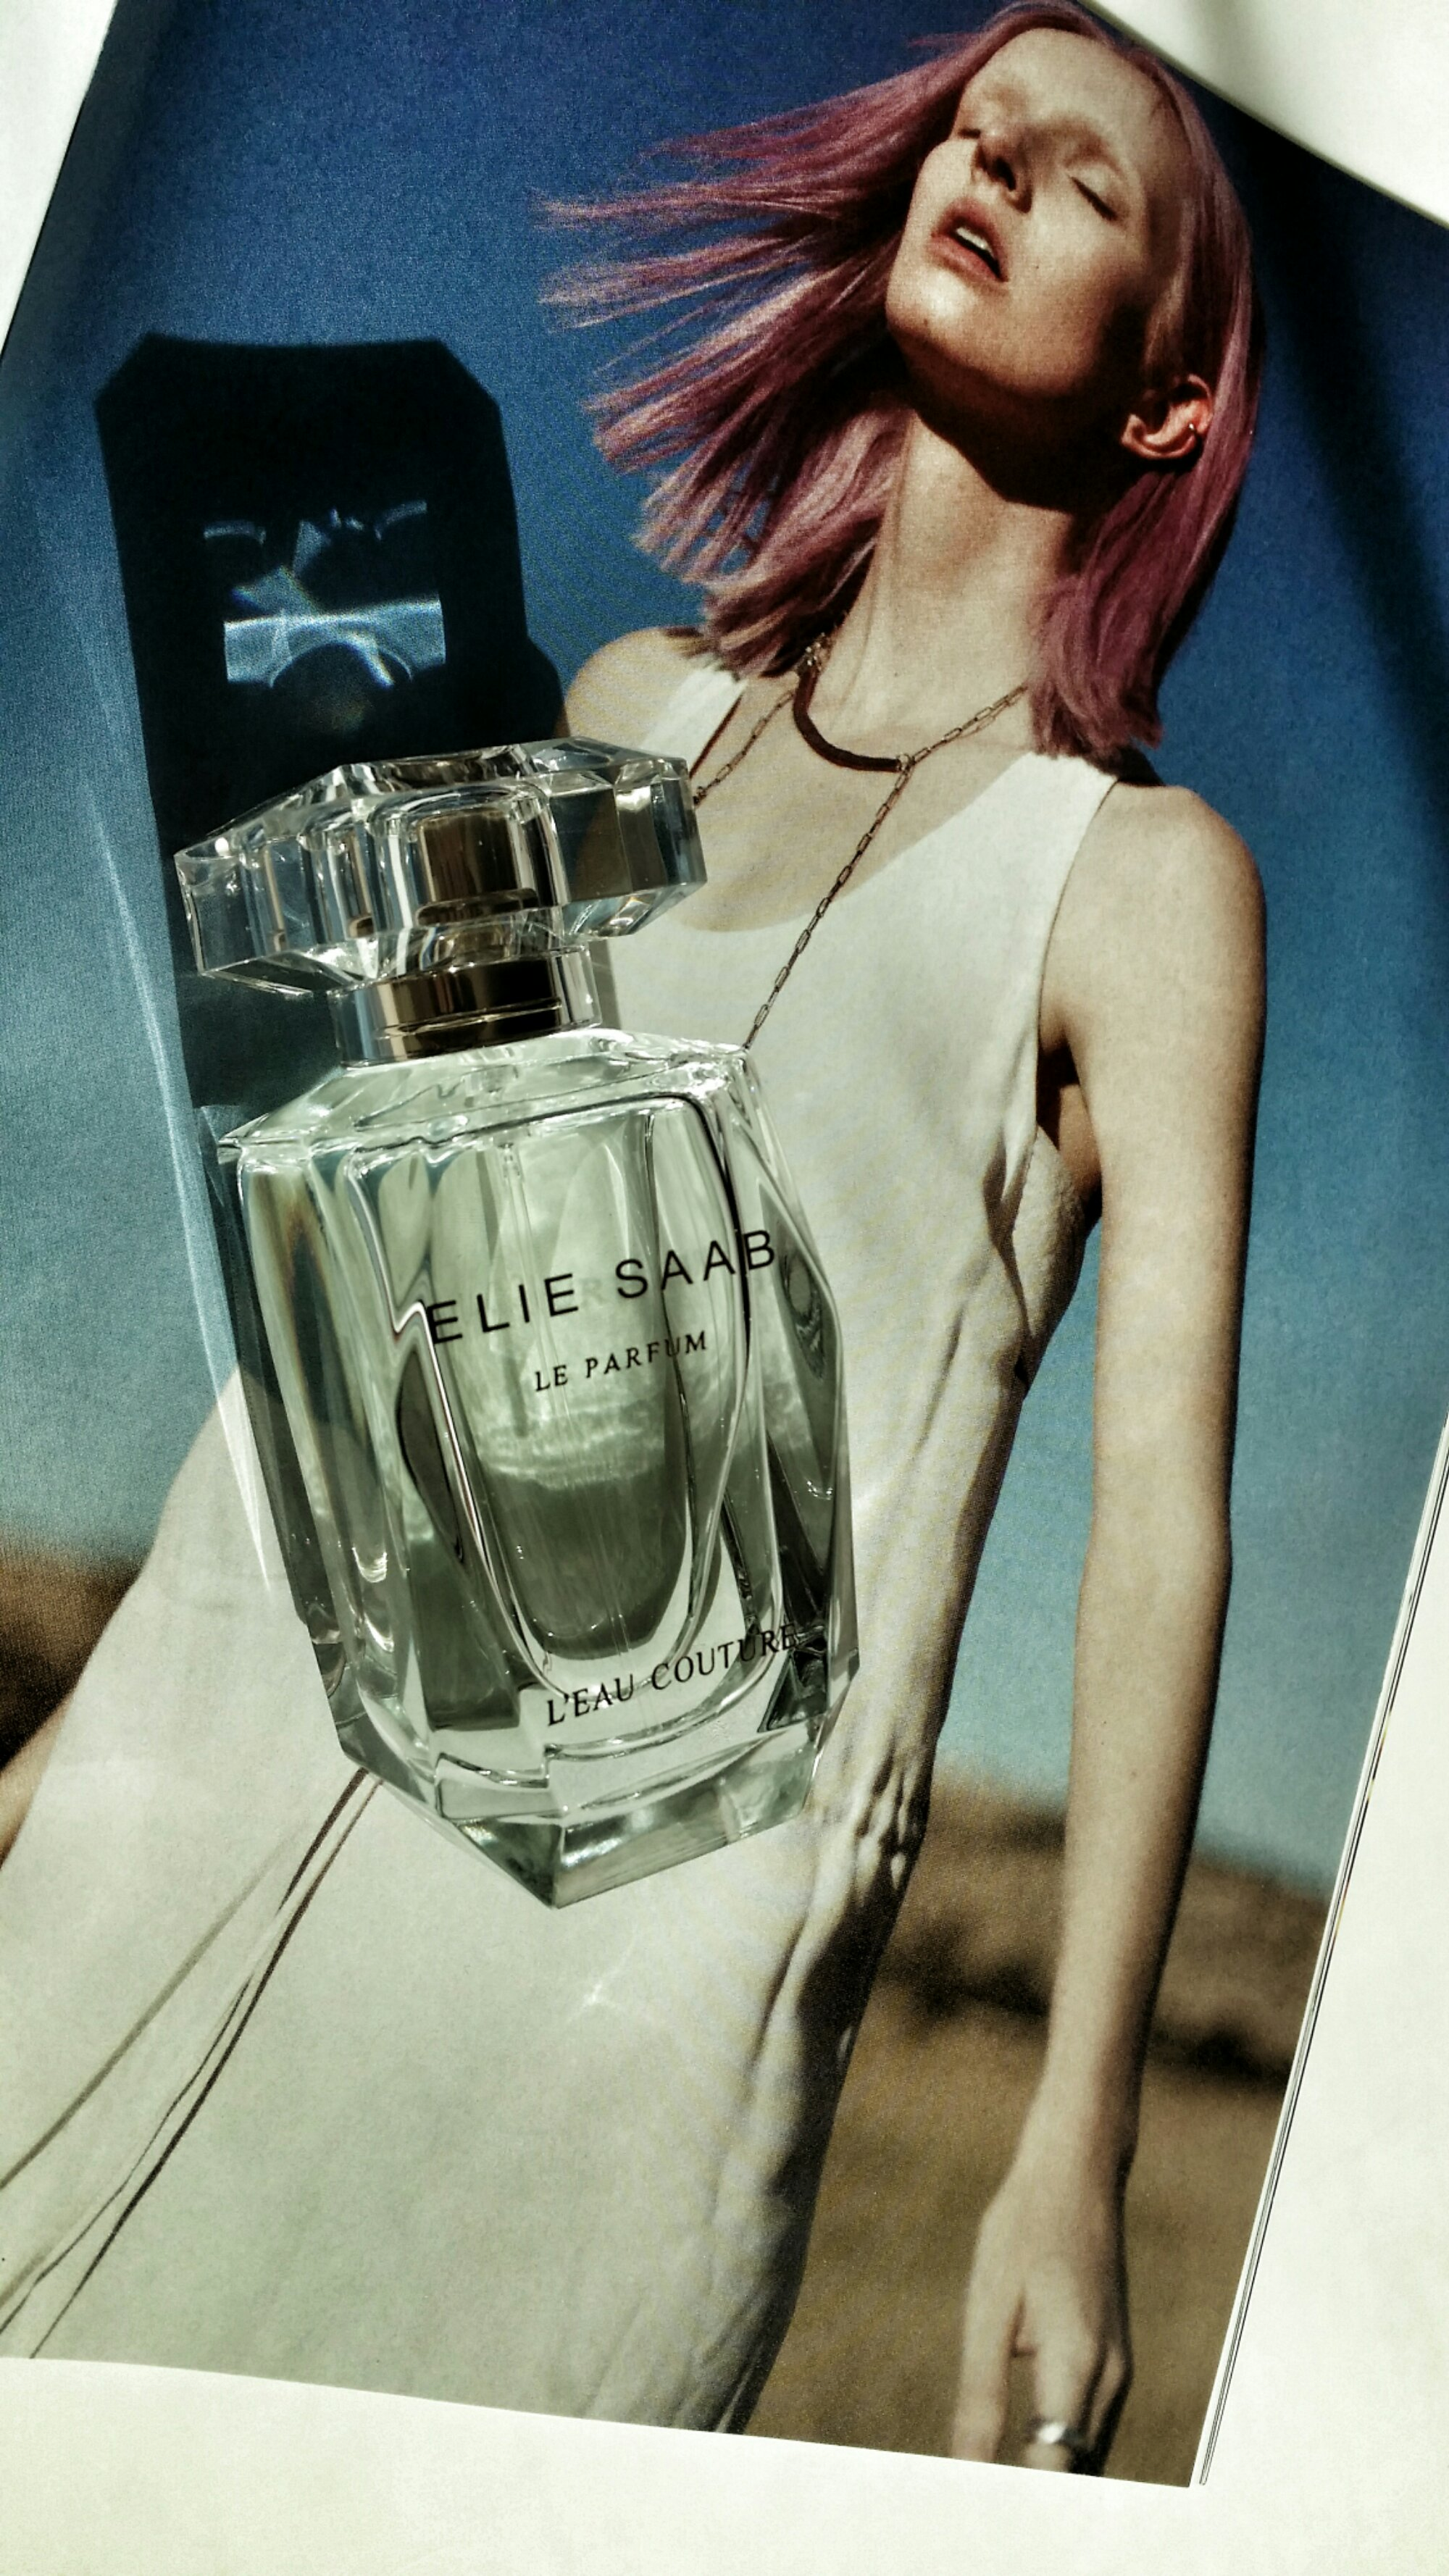 Elie Saab Le Parfum Leau Couture Eau De Toilette The Beauty Gazette